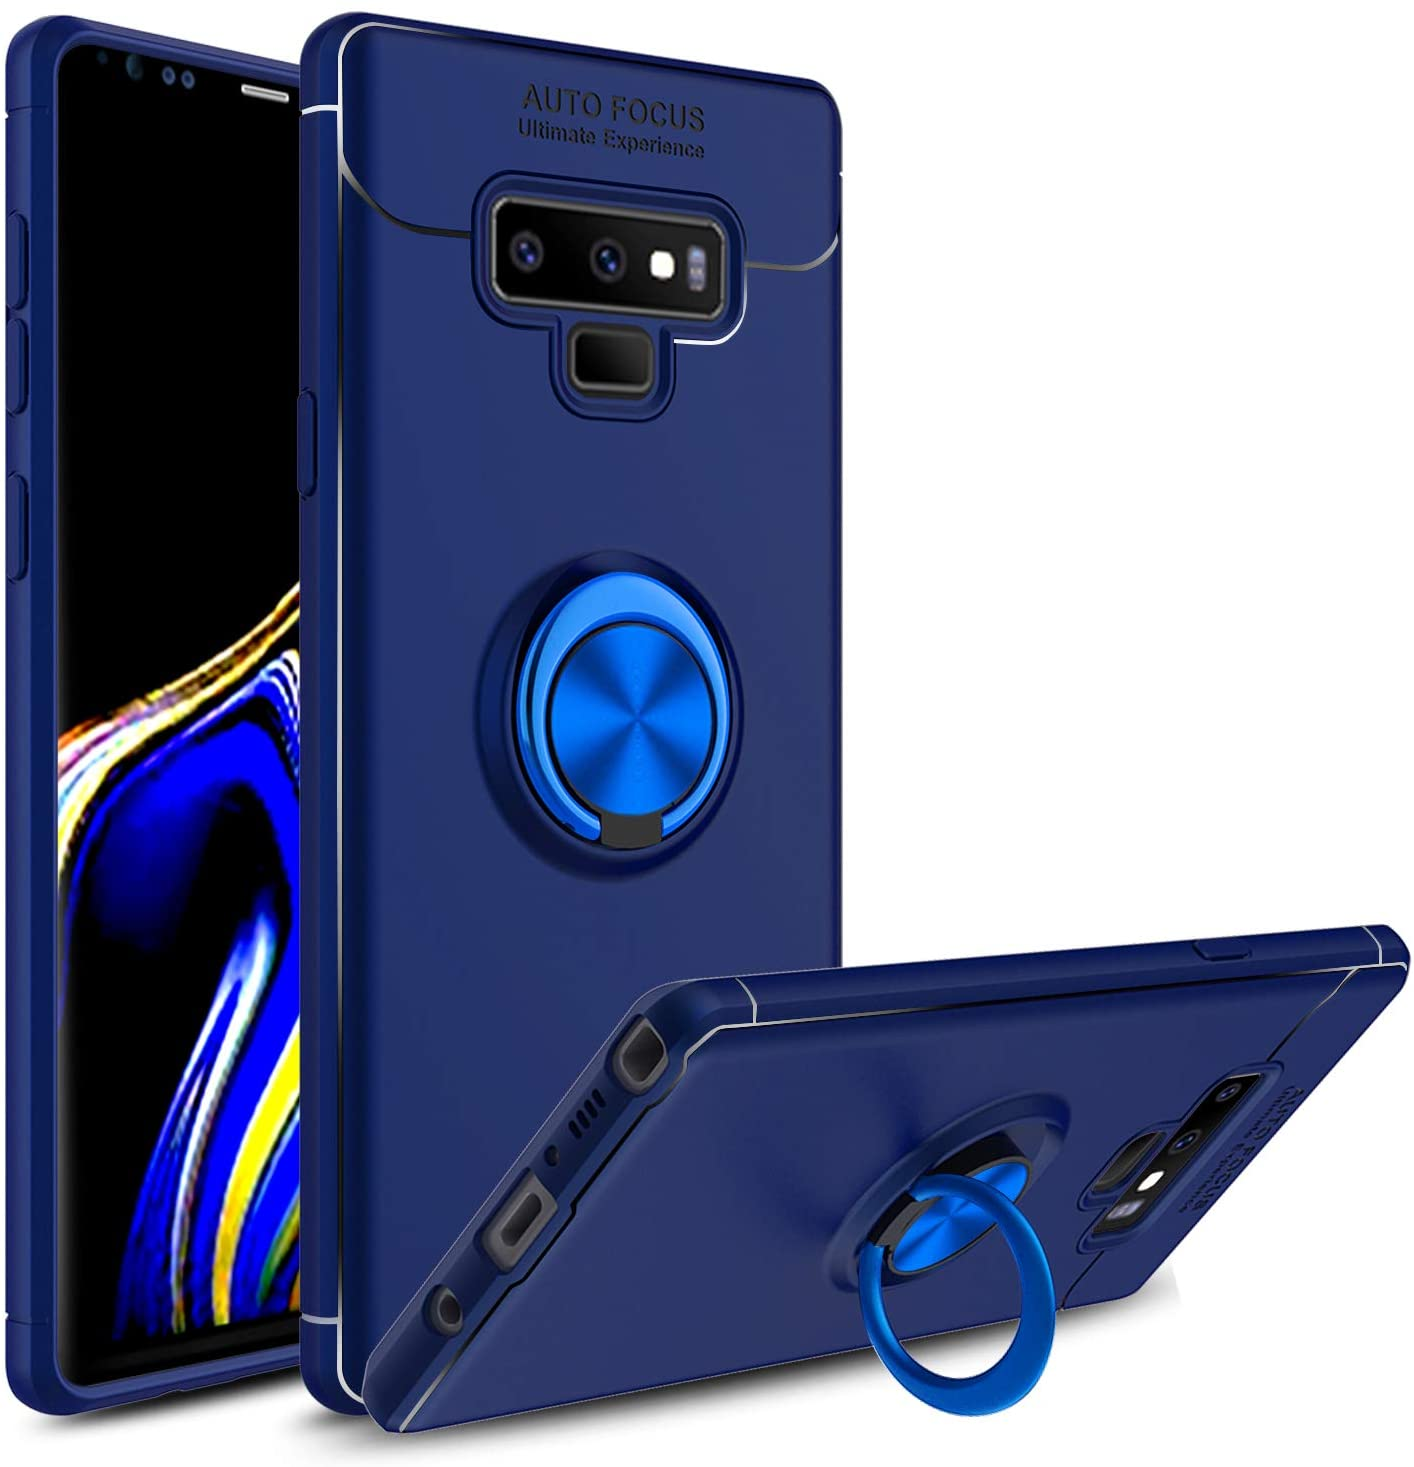 Venoro Galaxy Note 9 Case, 360 Degree Rotatable Ring Stand and Ring Holder Kickstand Fit Magnetic Car Mount Slim Soft Protective Case Cover for Samsung Galaxy Note 9 / SM-N960U (Blue)